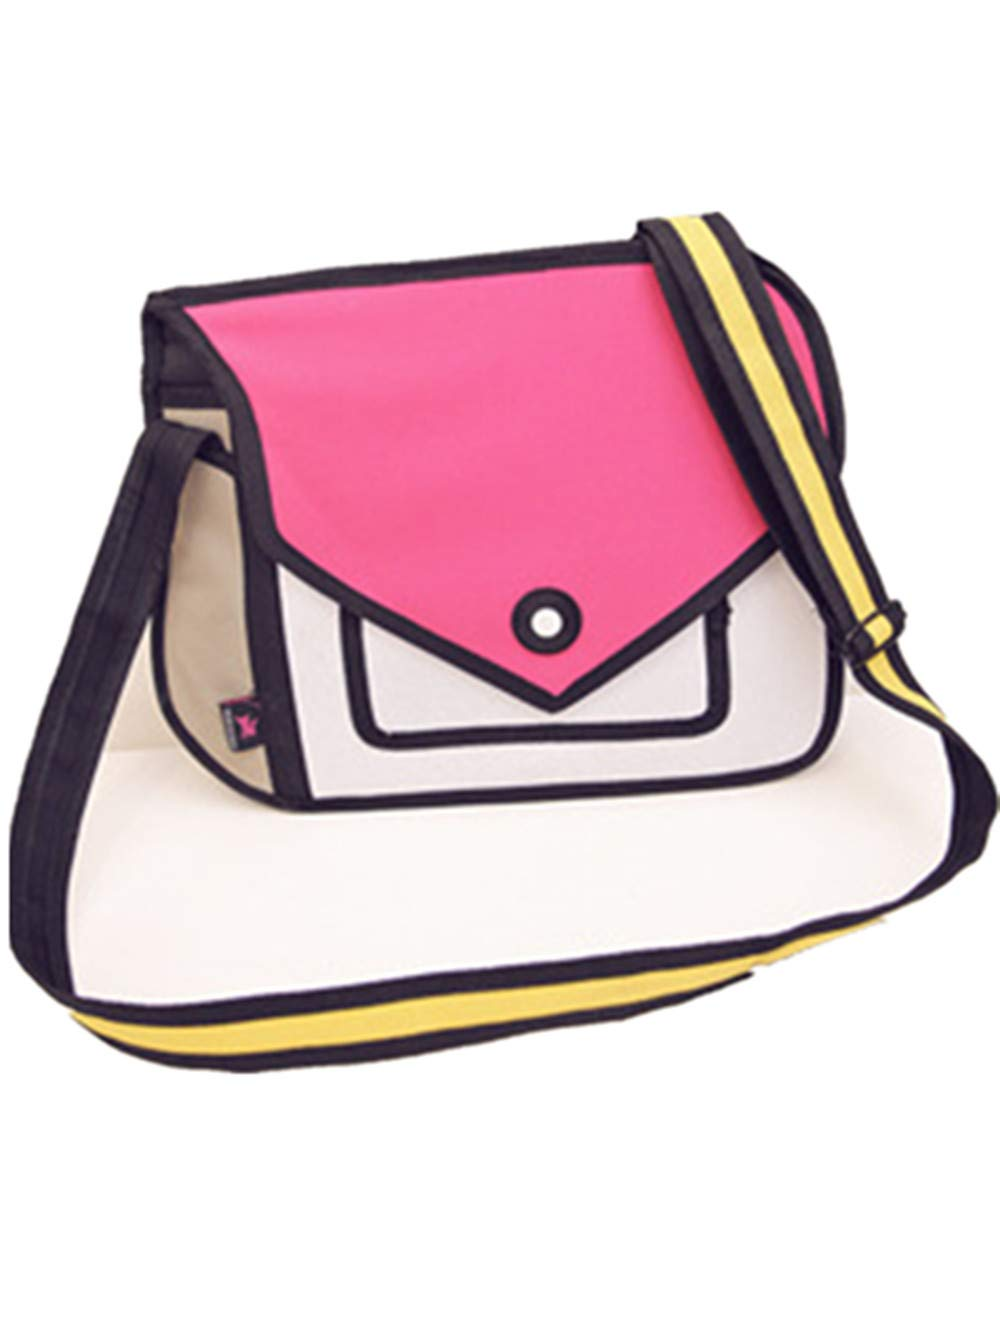 Xugq66 3d Style 2d Drawing Cartoon Handbag Shoulder Canvas Messenger Bag Bow Handbags Buy Online In Fiji Xugq66 Products In Fiji See Prices Reviews And Free Delivery Over 200 Fj Desertcart